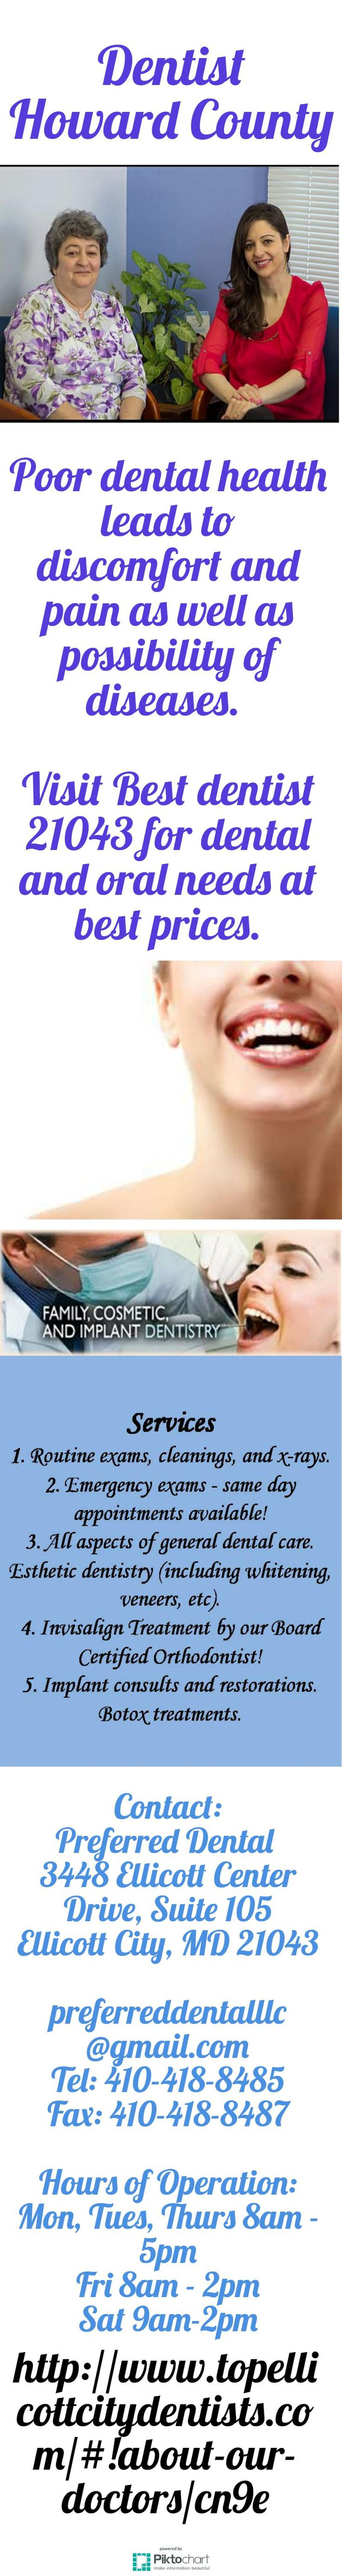 Poor dental health leads to discomfort and pain as well as possibility of diseases. Visit Best dentist 21043 for dental and oral needs at best prices. See more at:  http://www.topellicottcitydentists.com/#!about-our-doctors/cn9e